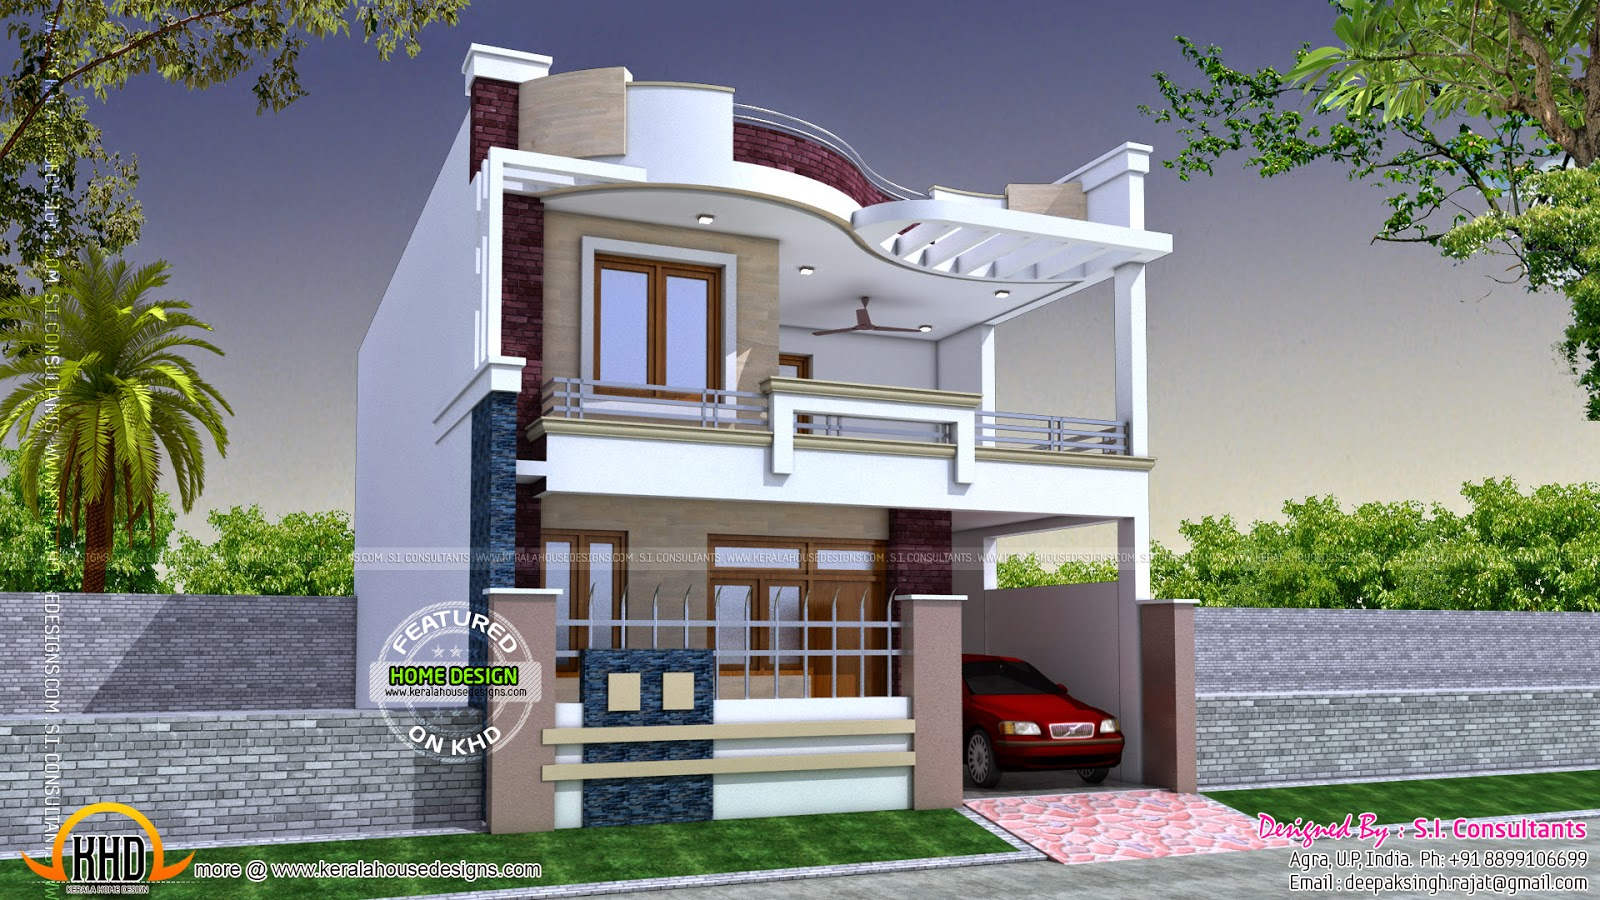 Modern indian home design kerala home design and floor plans for Best house designs indian style